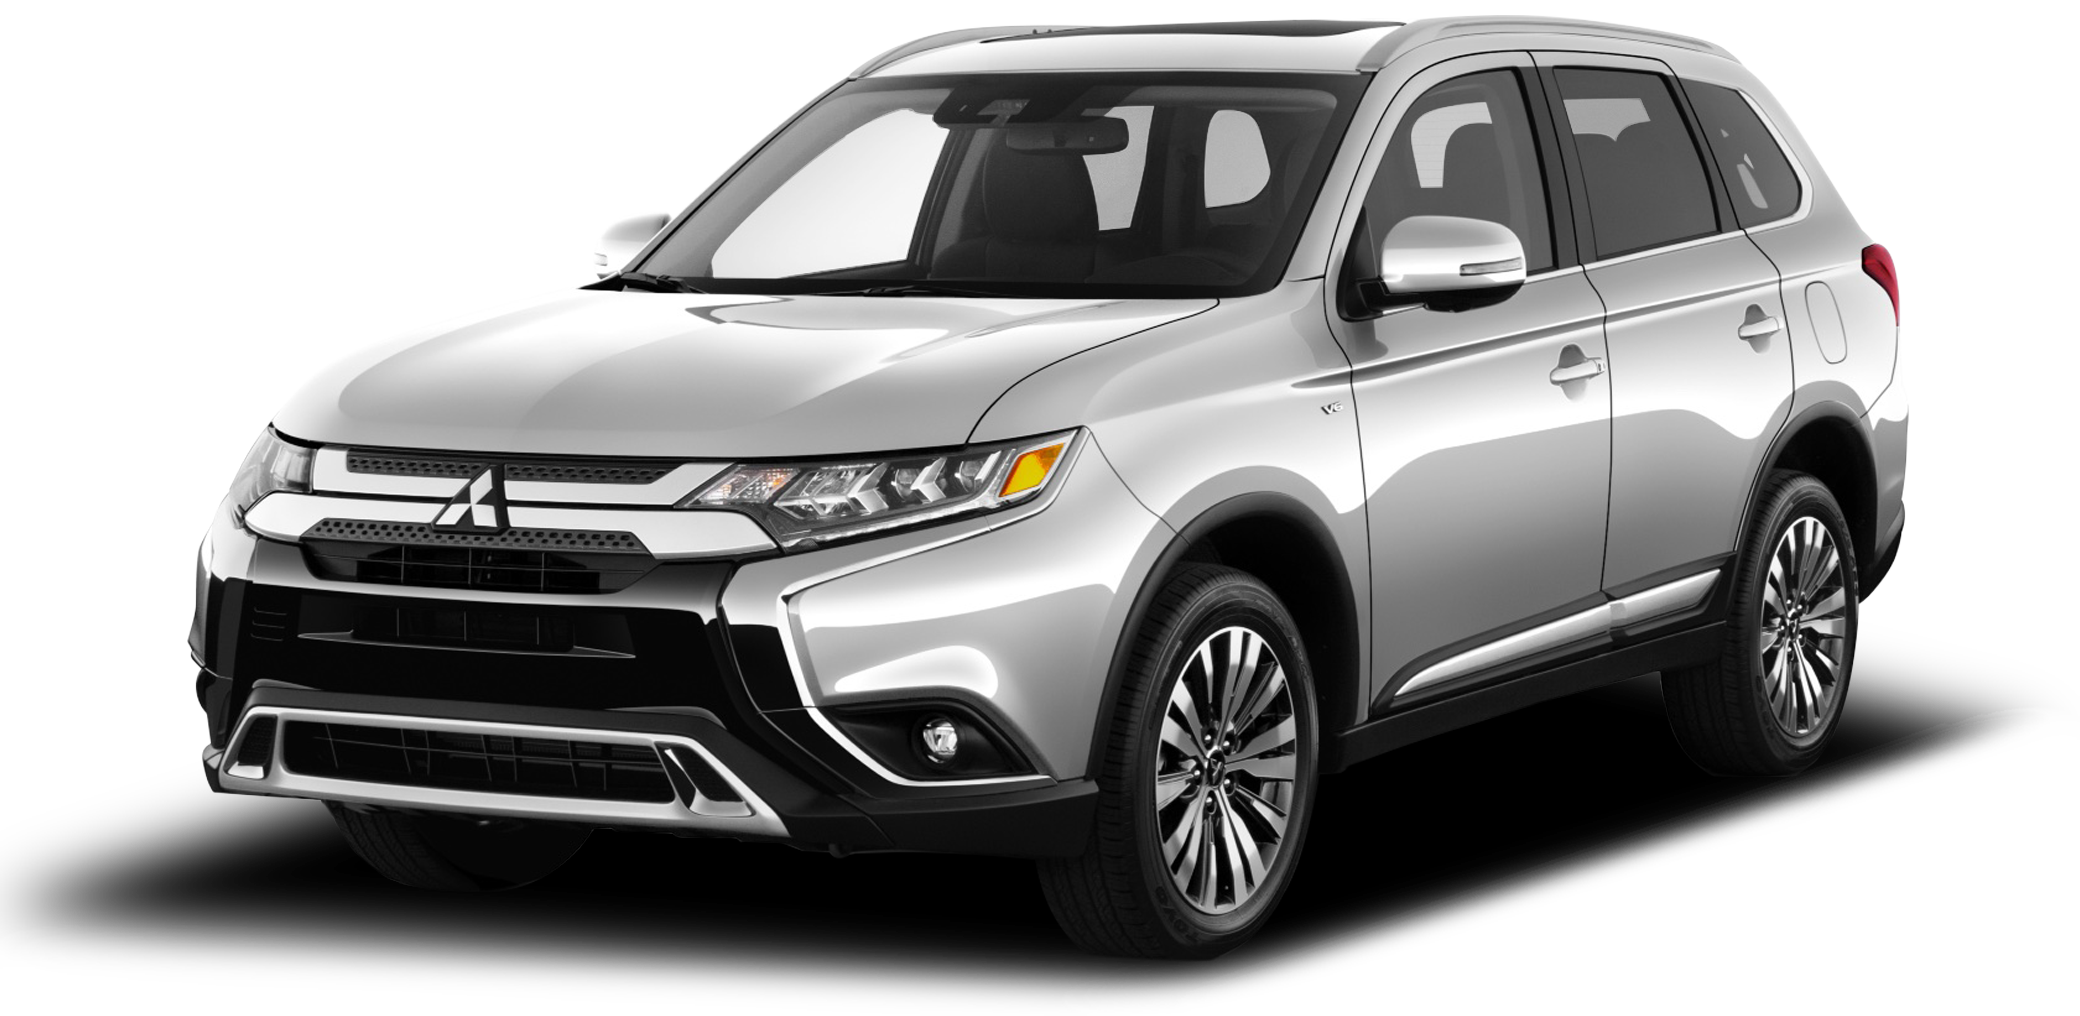 Mitsubishi Outlander In Thornton Co Skyline 2015 Eclipse Efficiency And Velocity Best Auto Insurance Suv